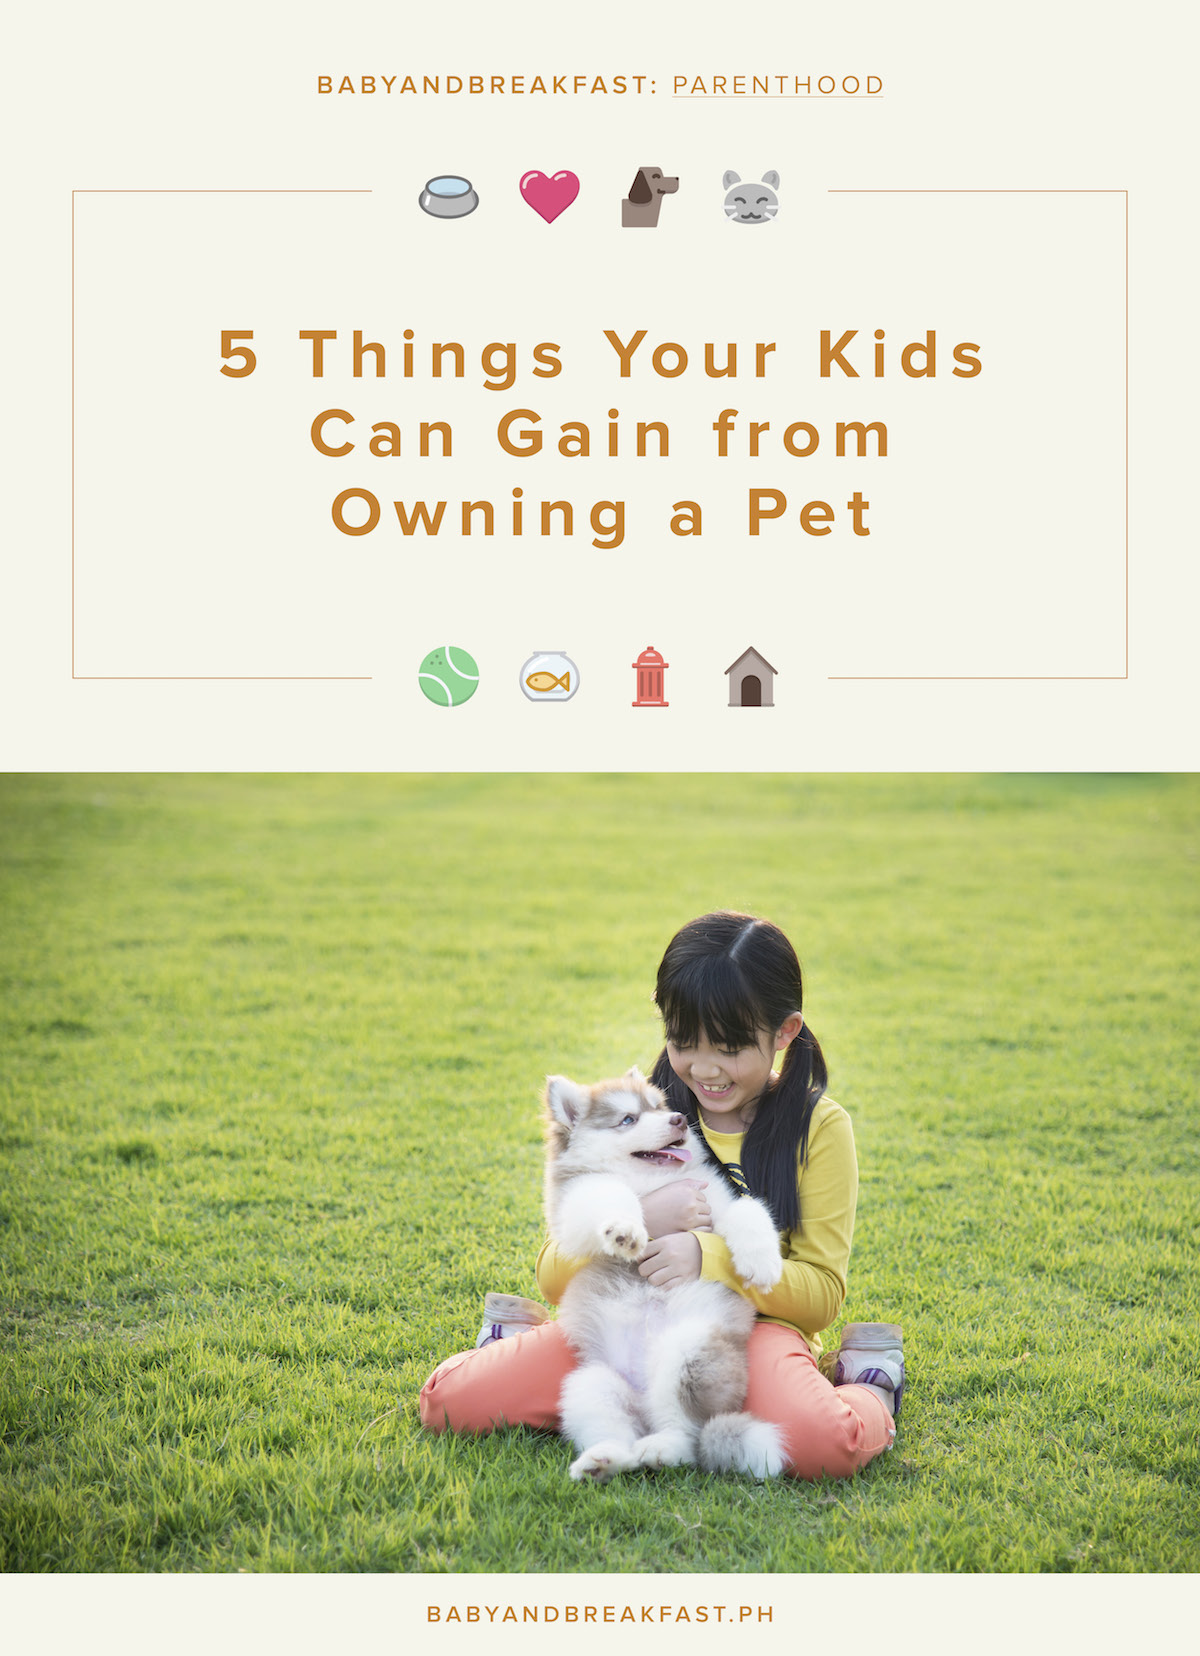 Baby and Breakfast: Parenthood 5 Things Your Kids Can Gain from Owning a Pet